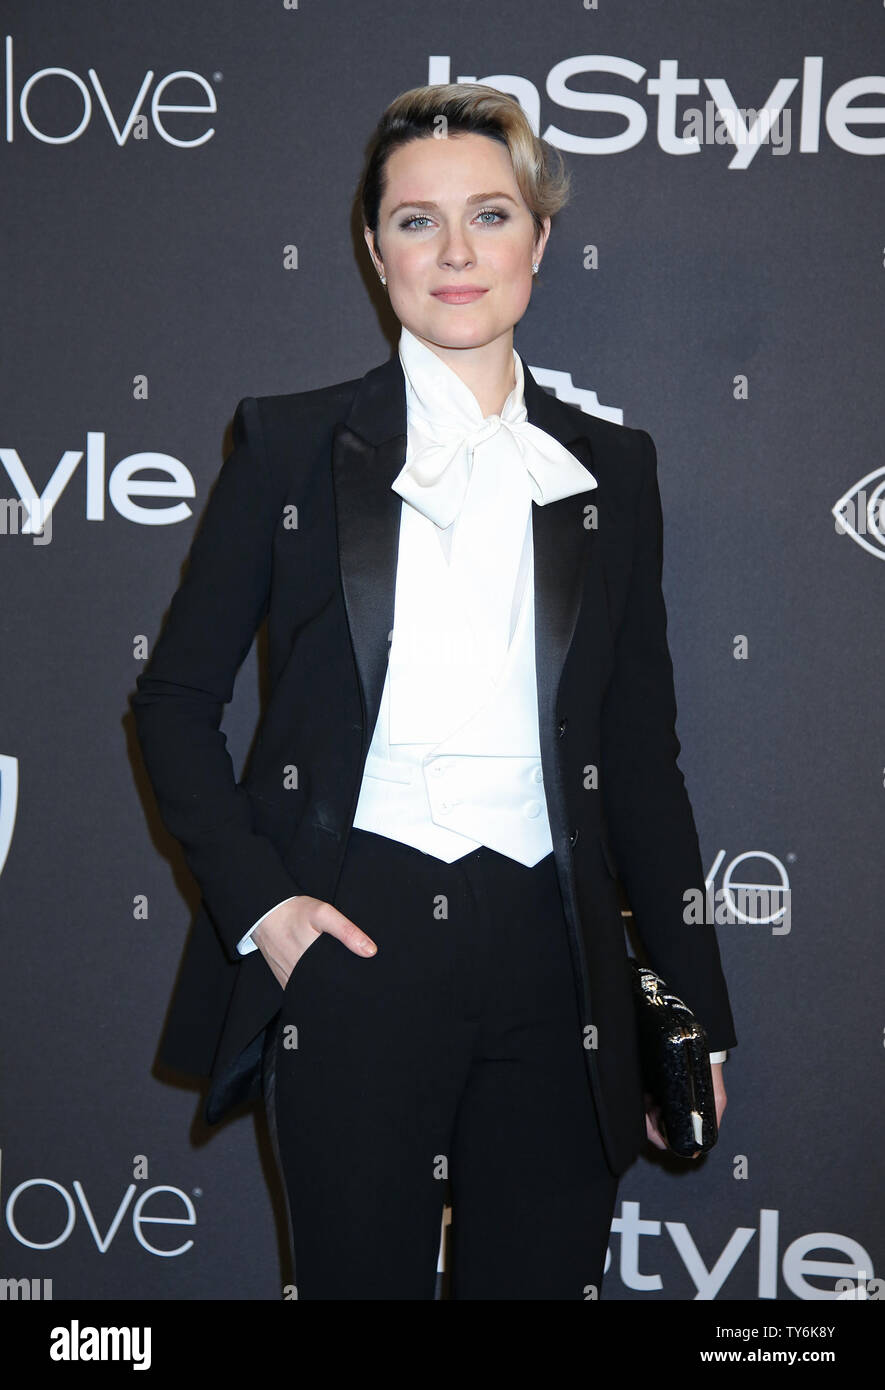 Evan Rachel Wood attends the 18th annual InStyle and Warner Bros. Golden Globe after-party at the Beverly Hilton Hotel in Beverly Hills, California on January 8, 2017.  Photo by David Silpa/UPI - Stock Image